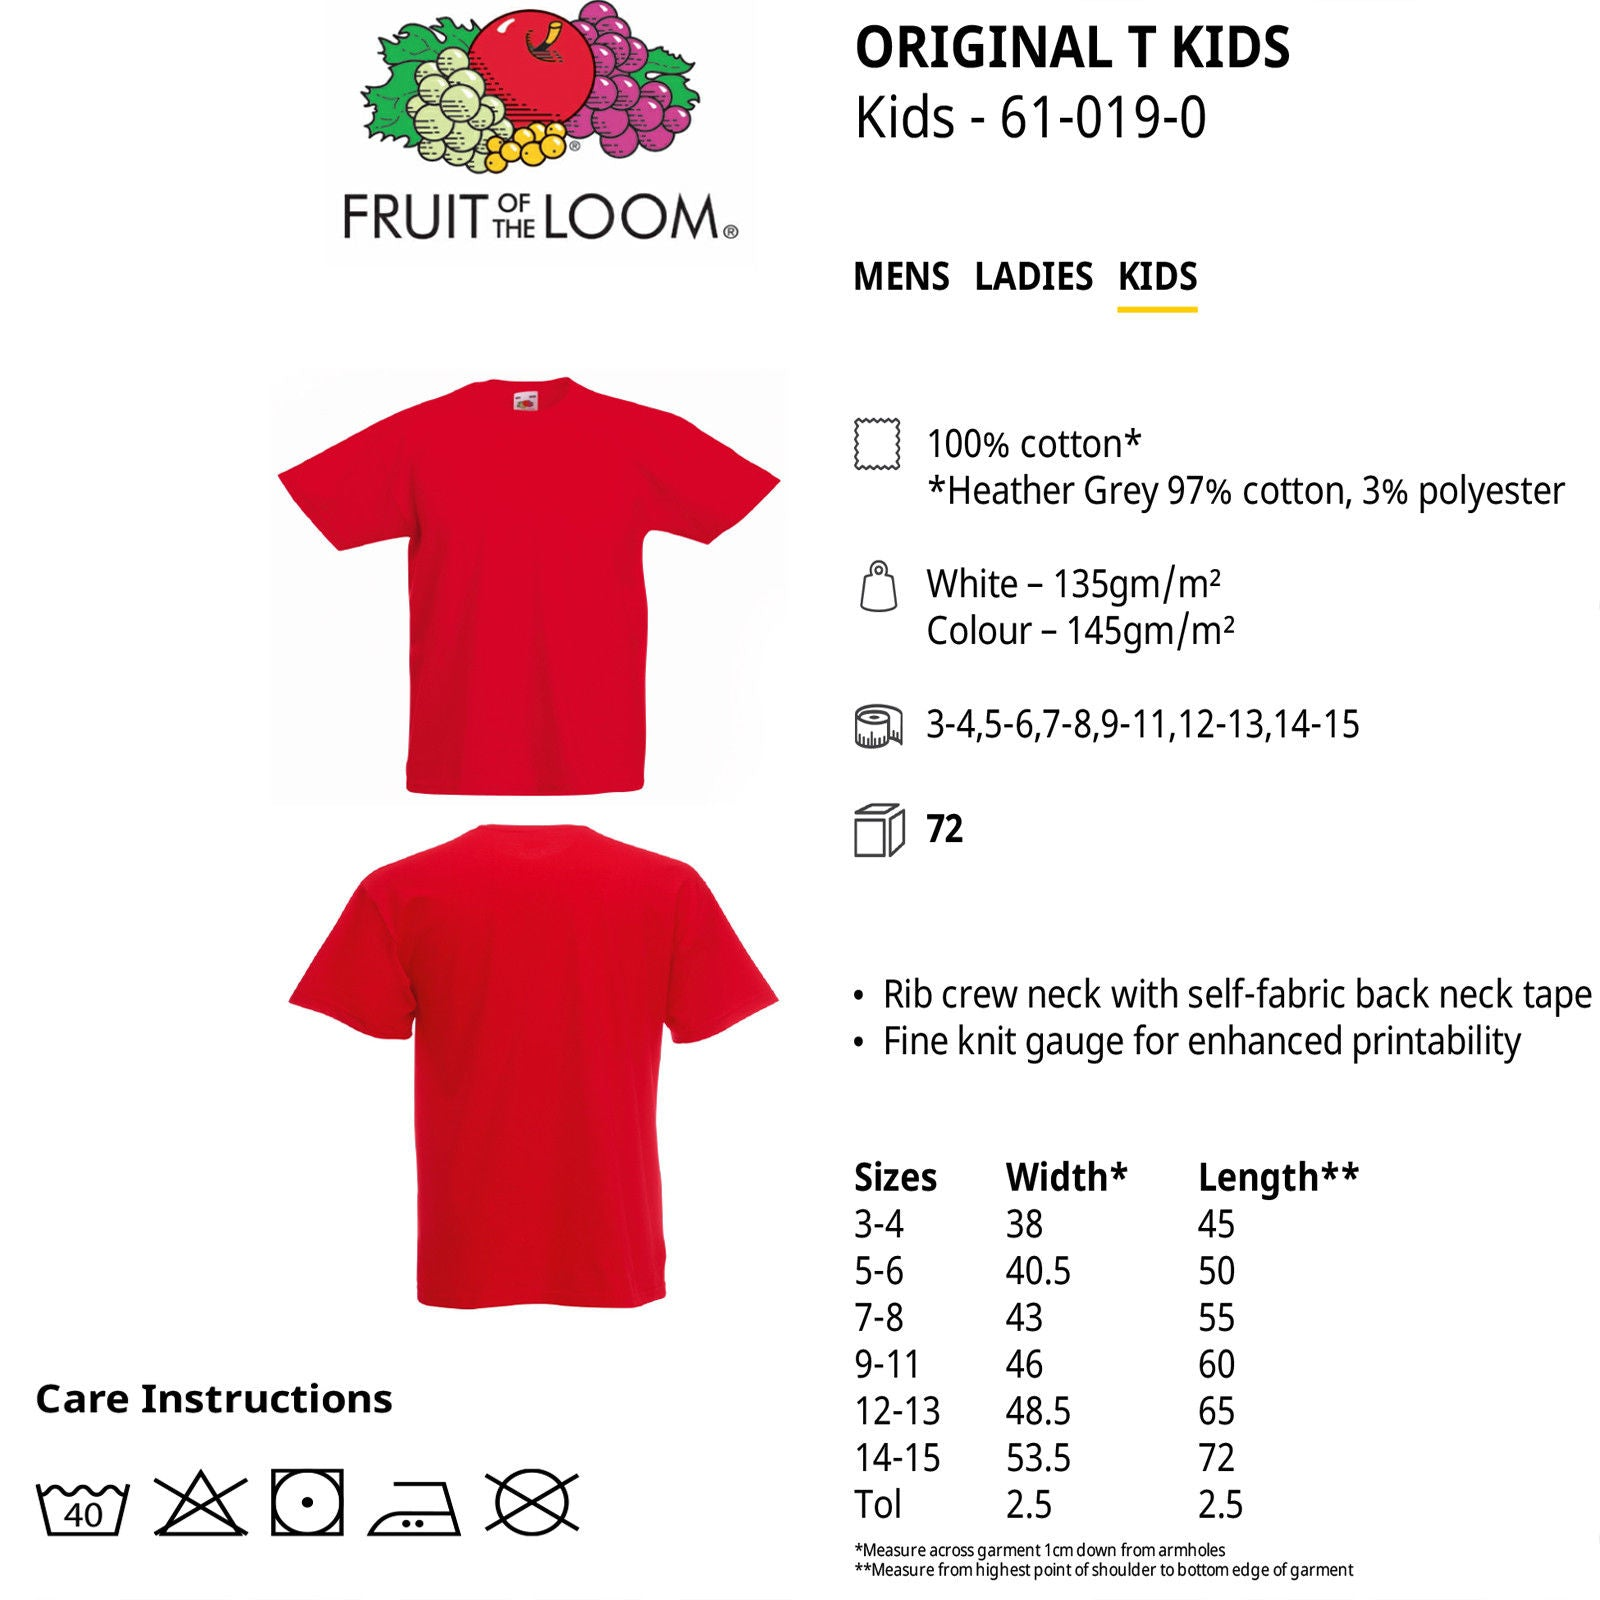 a48fcfaf5 ... Cotton Plain Childrens Boys Girls T Shirts Wholesale Supplier. Fruit of  the Loom